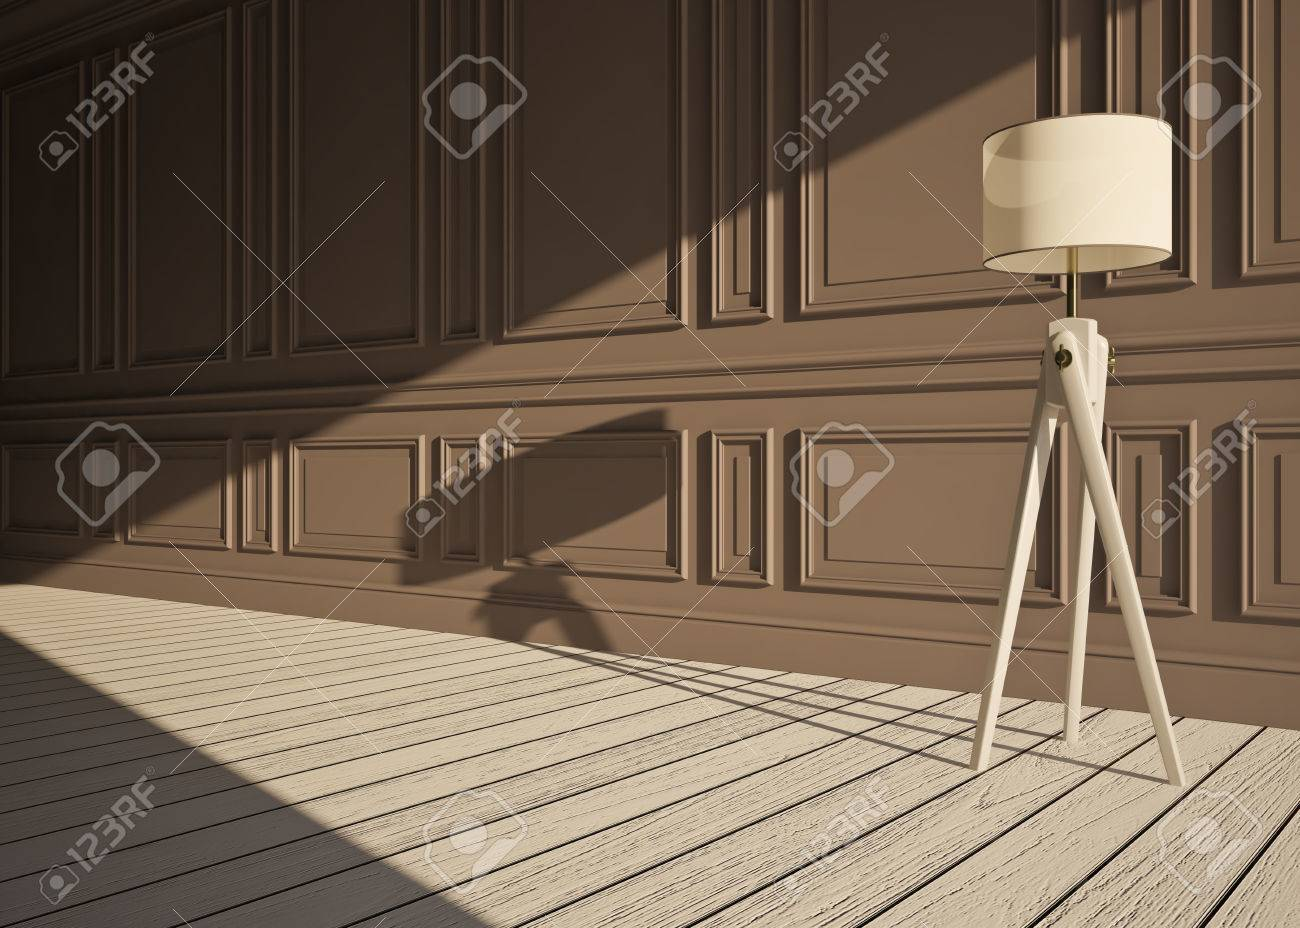 classic interior with  lamp and wall panels Stock Photo - 23956380